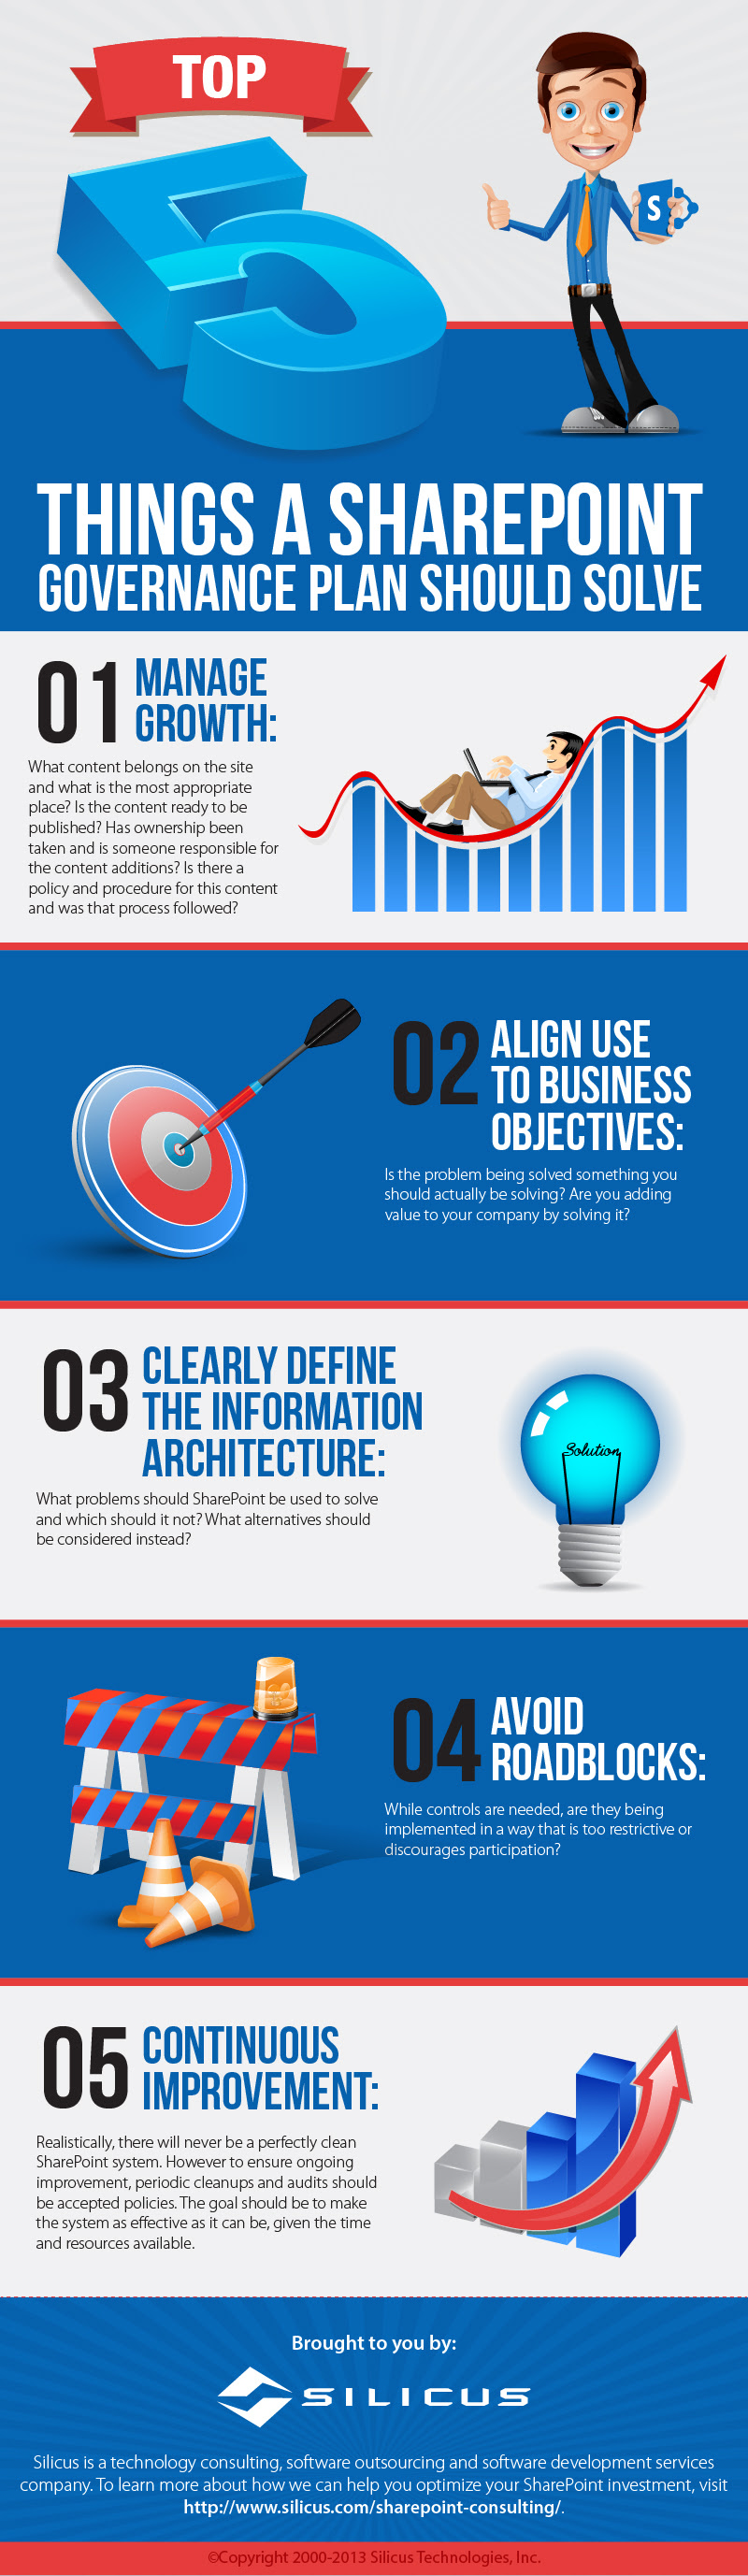 Governance Leads to SharePoint Success [Infographic] image Silicus Technologies SharePoint Governance Infographic